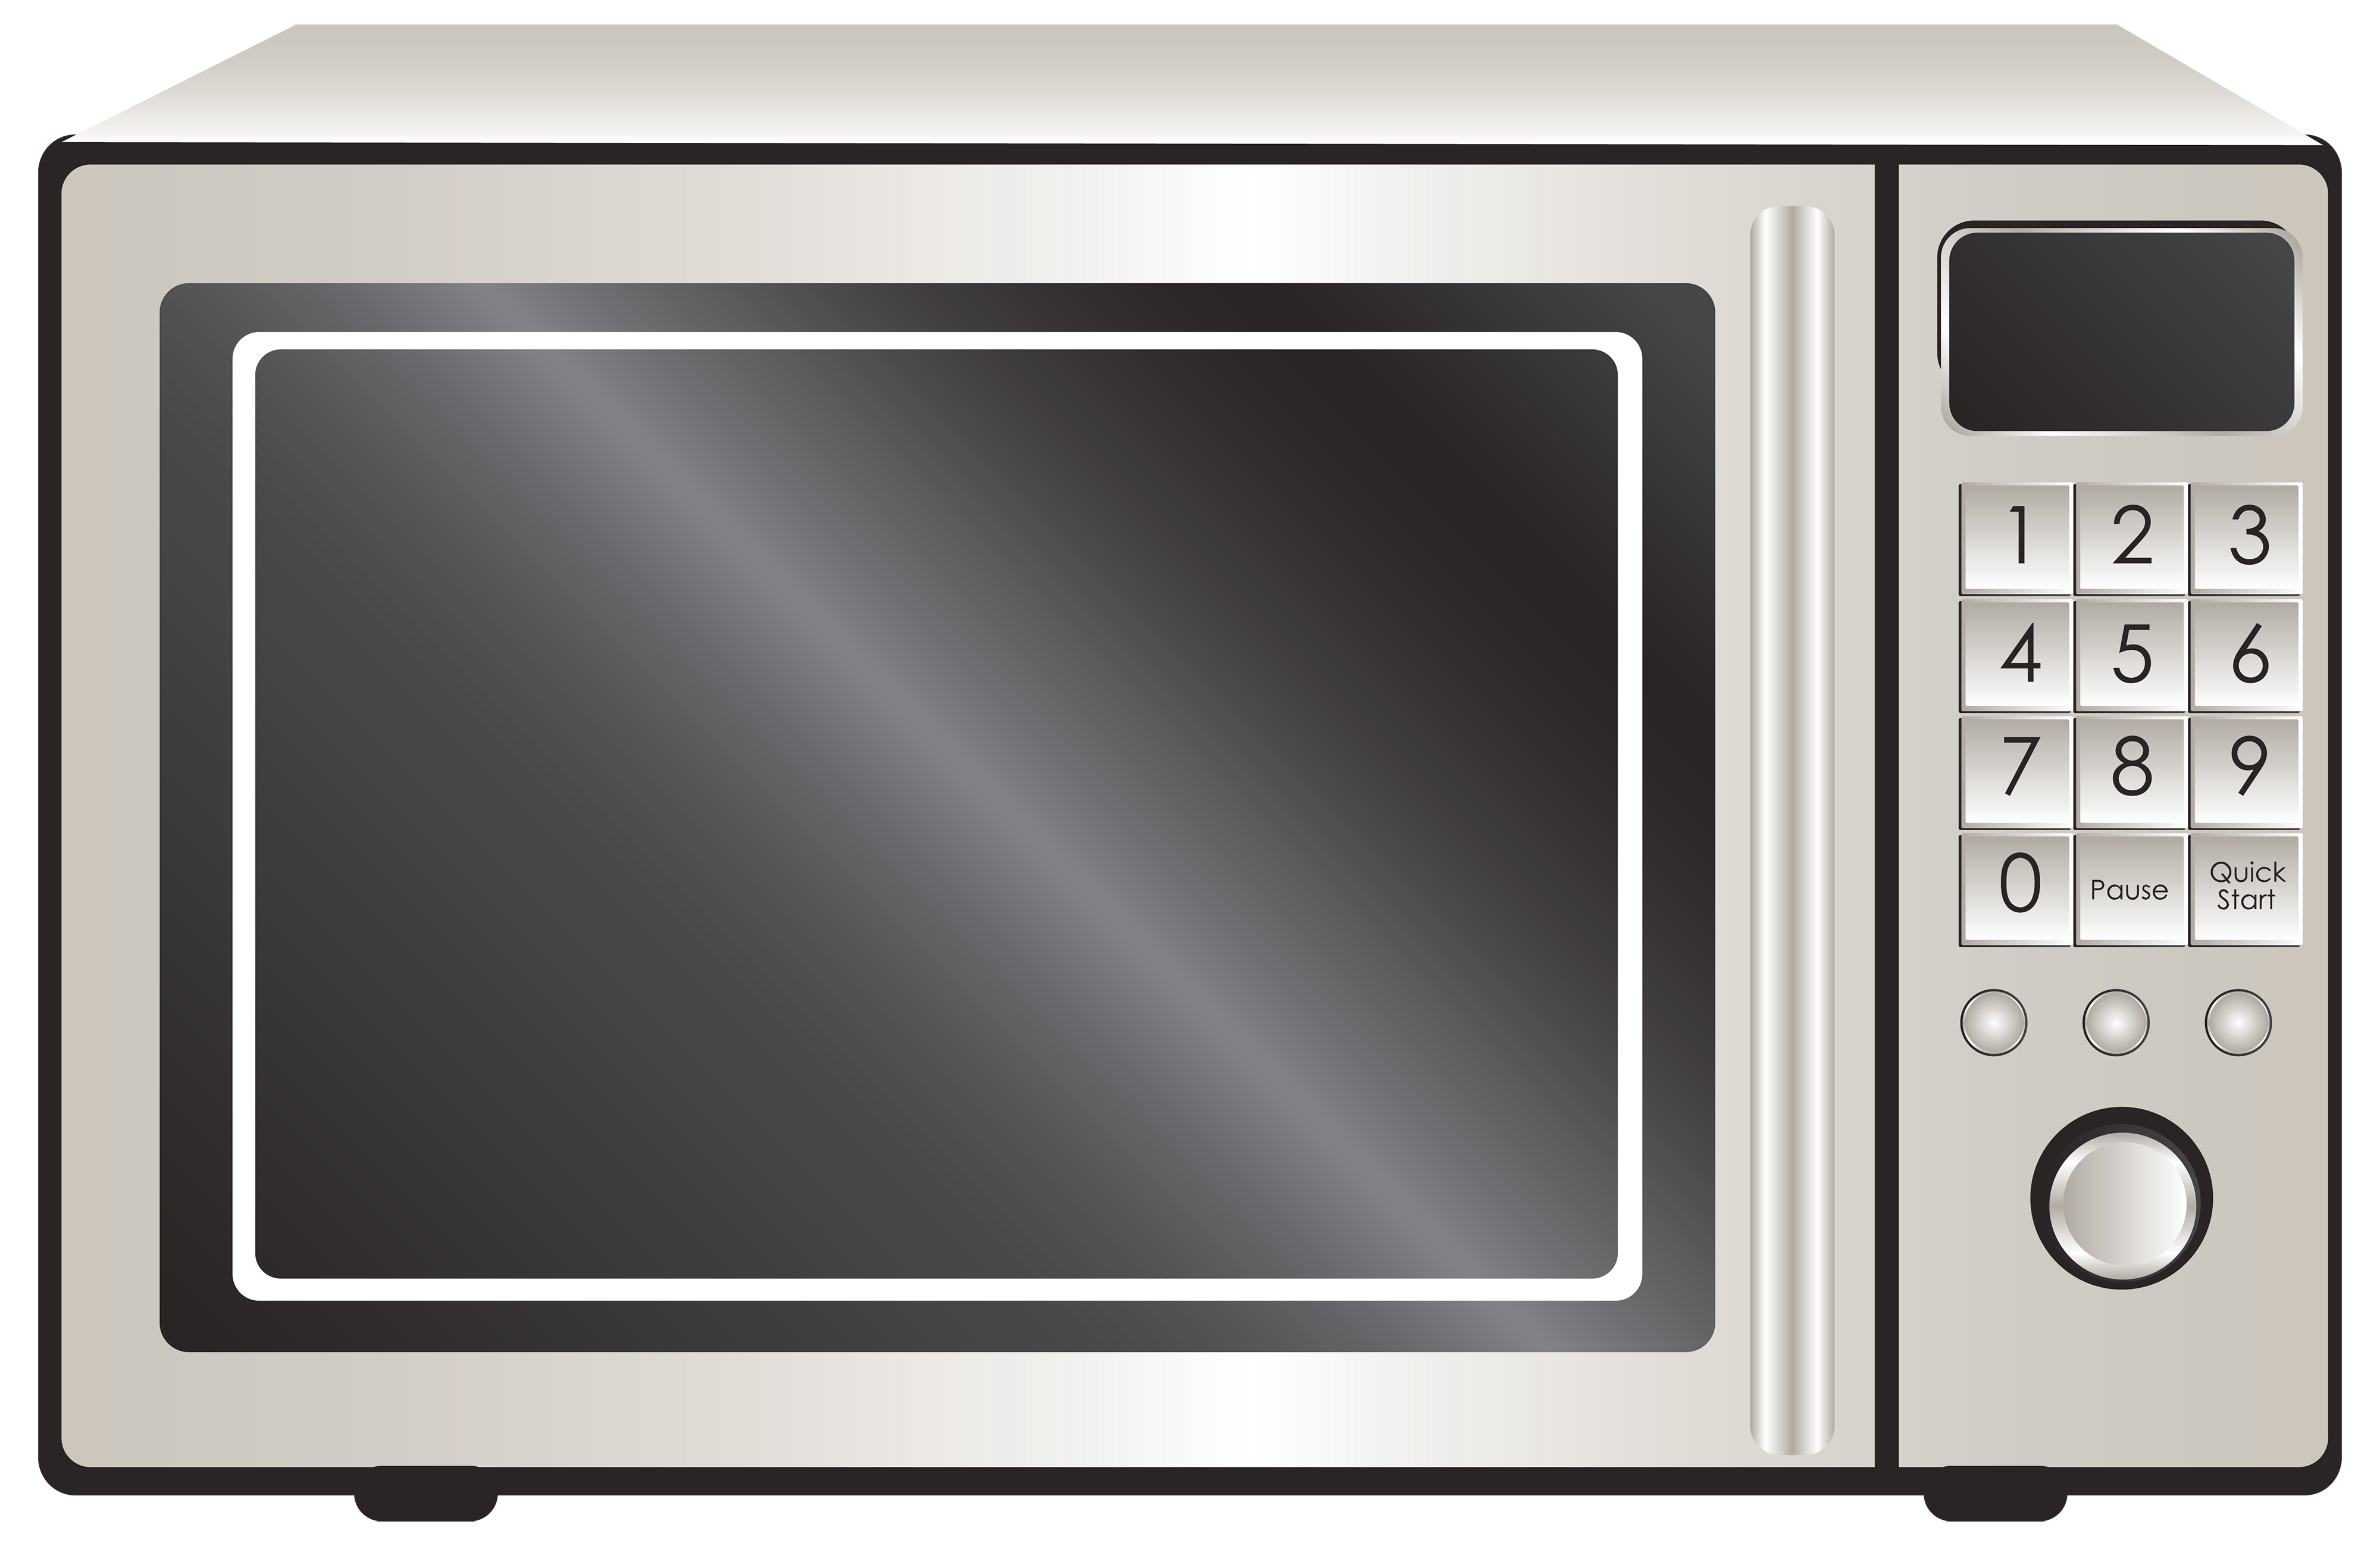 Clip art microwave clipart stonetire free images clipartbarn.